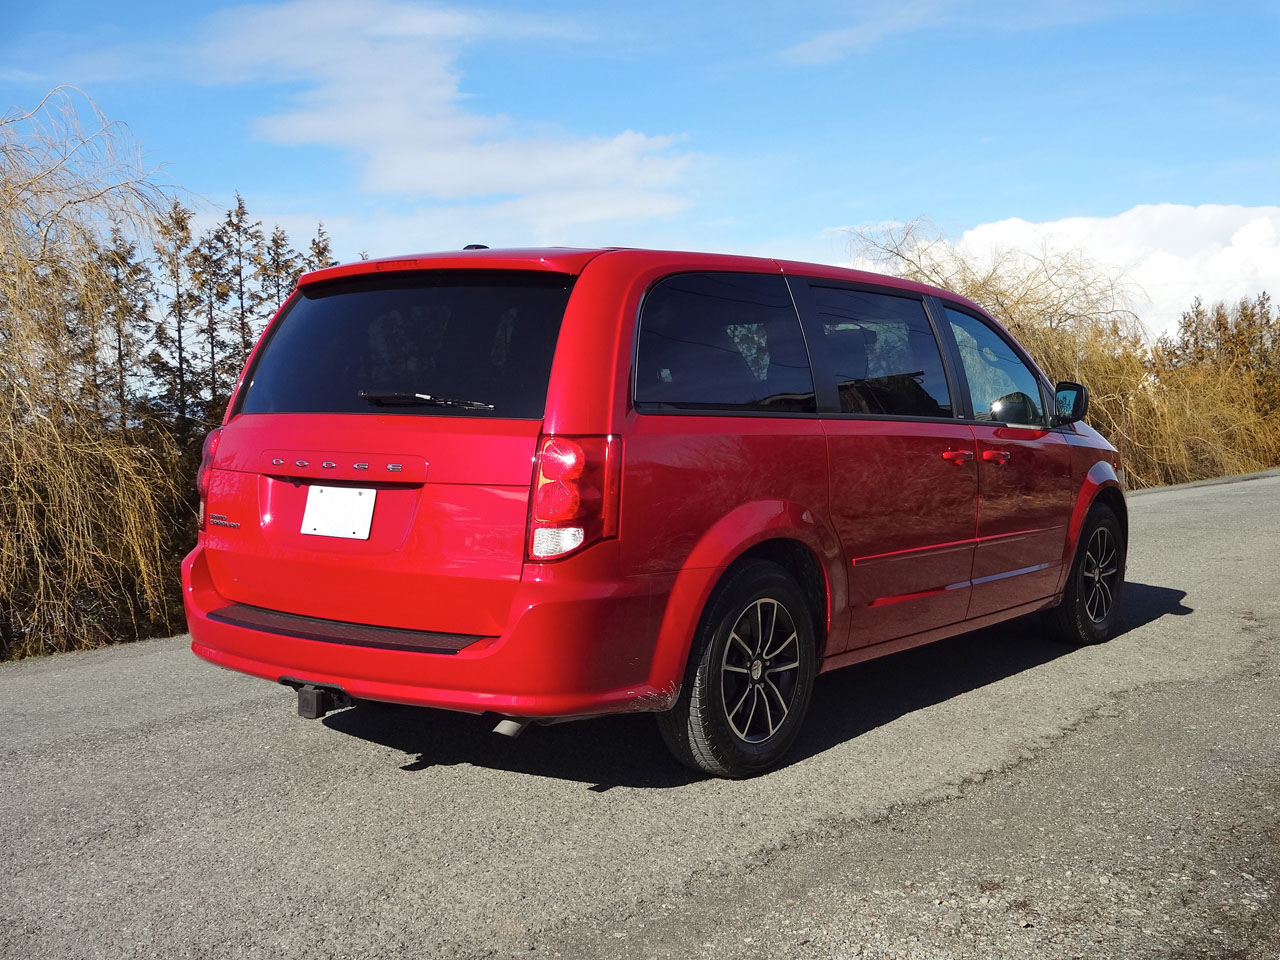 2014 dodge grand caravan sxt plus road test review carcostcanada. Black Bedroom Furniture Sets. Home Design Ideas